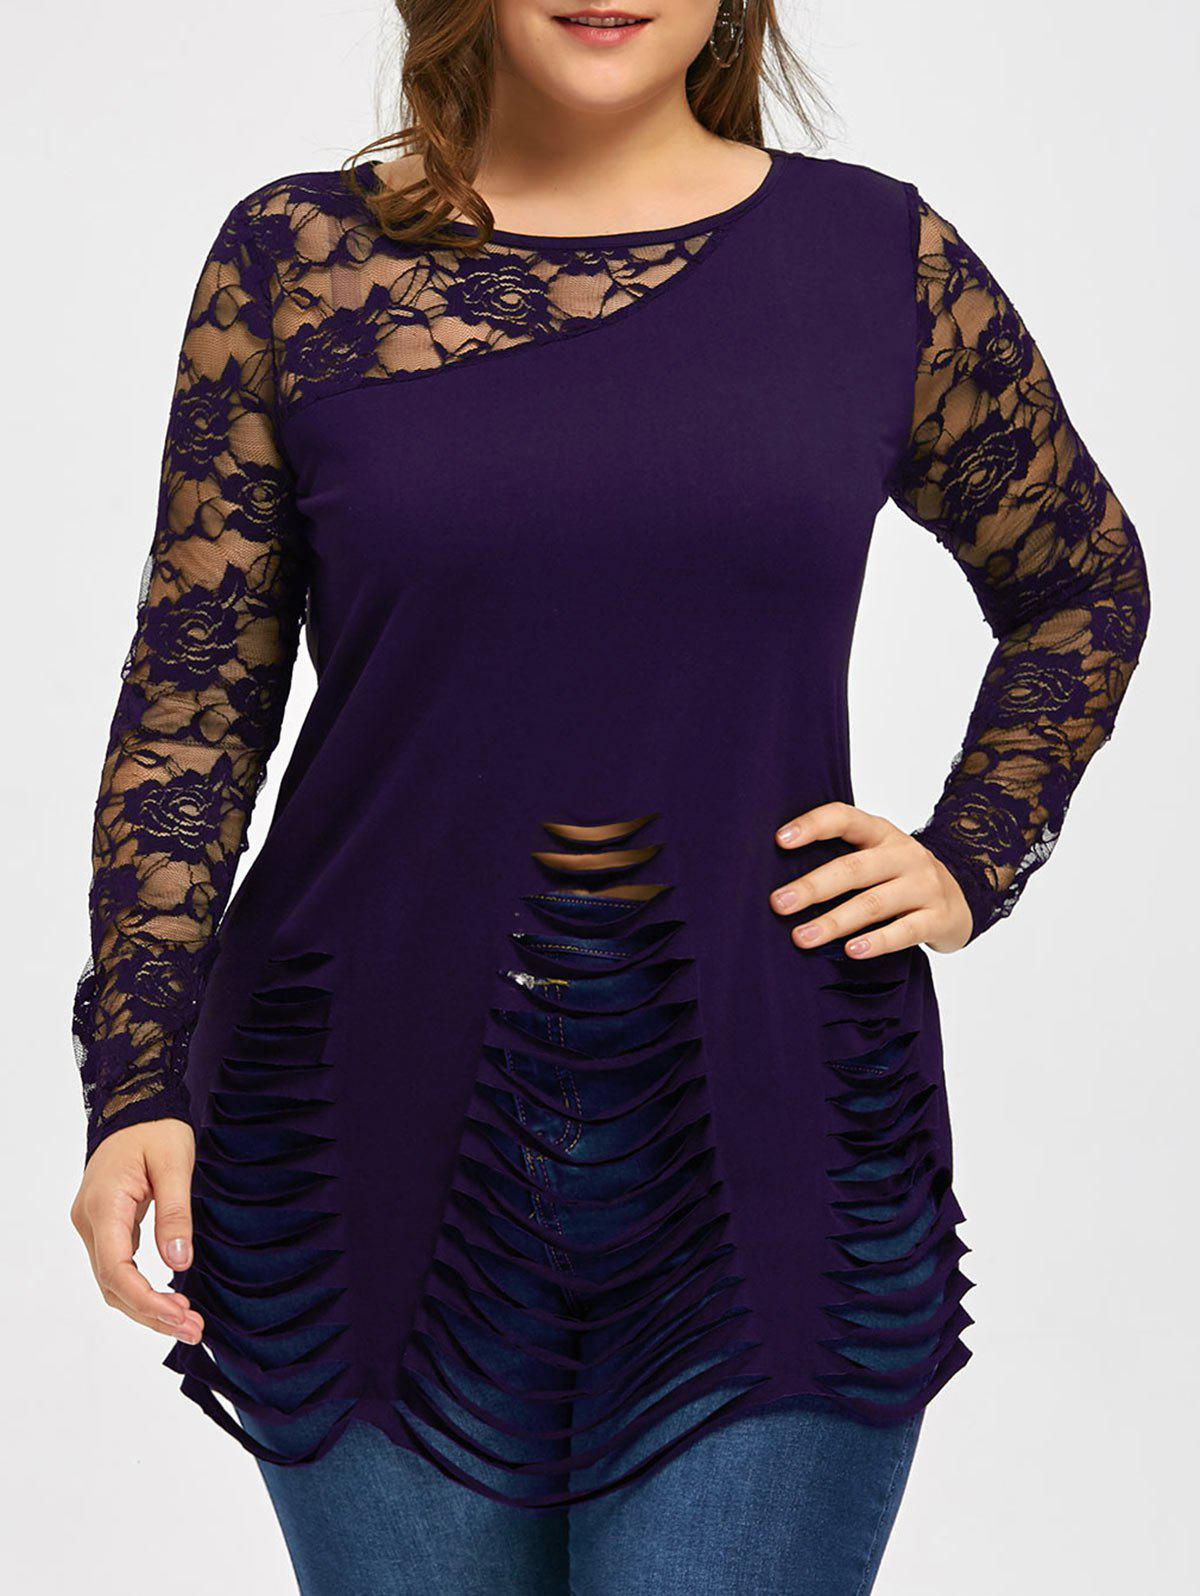 Plus Size Lace Trim Ripped Top - DEEP PURPLE XL